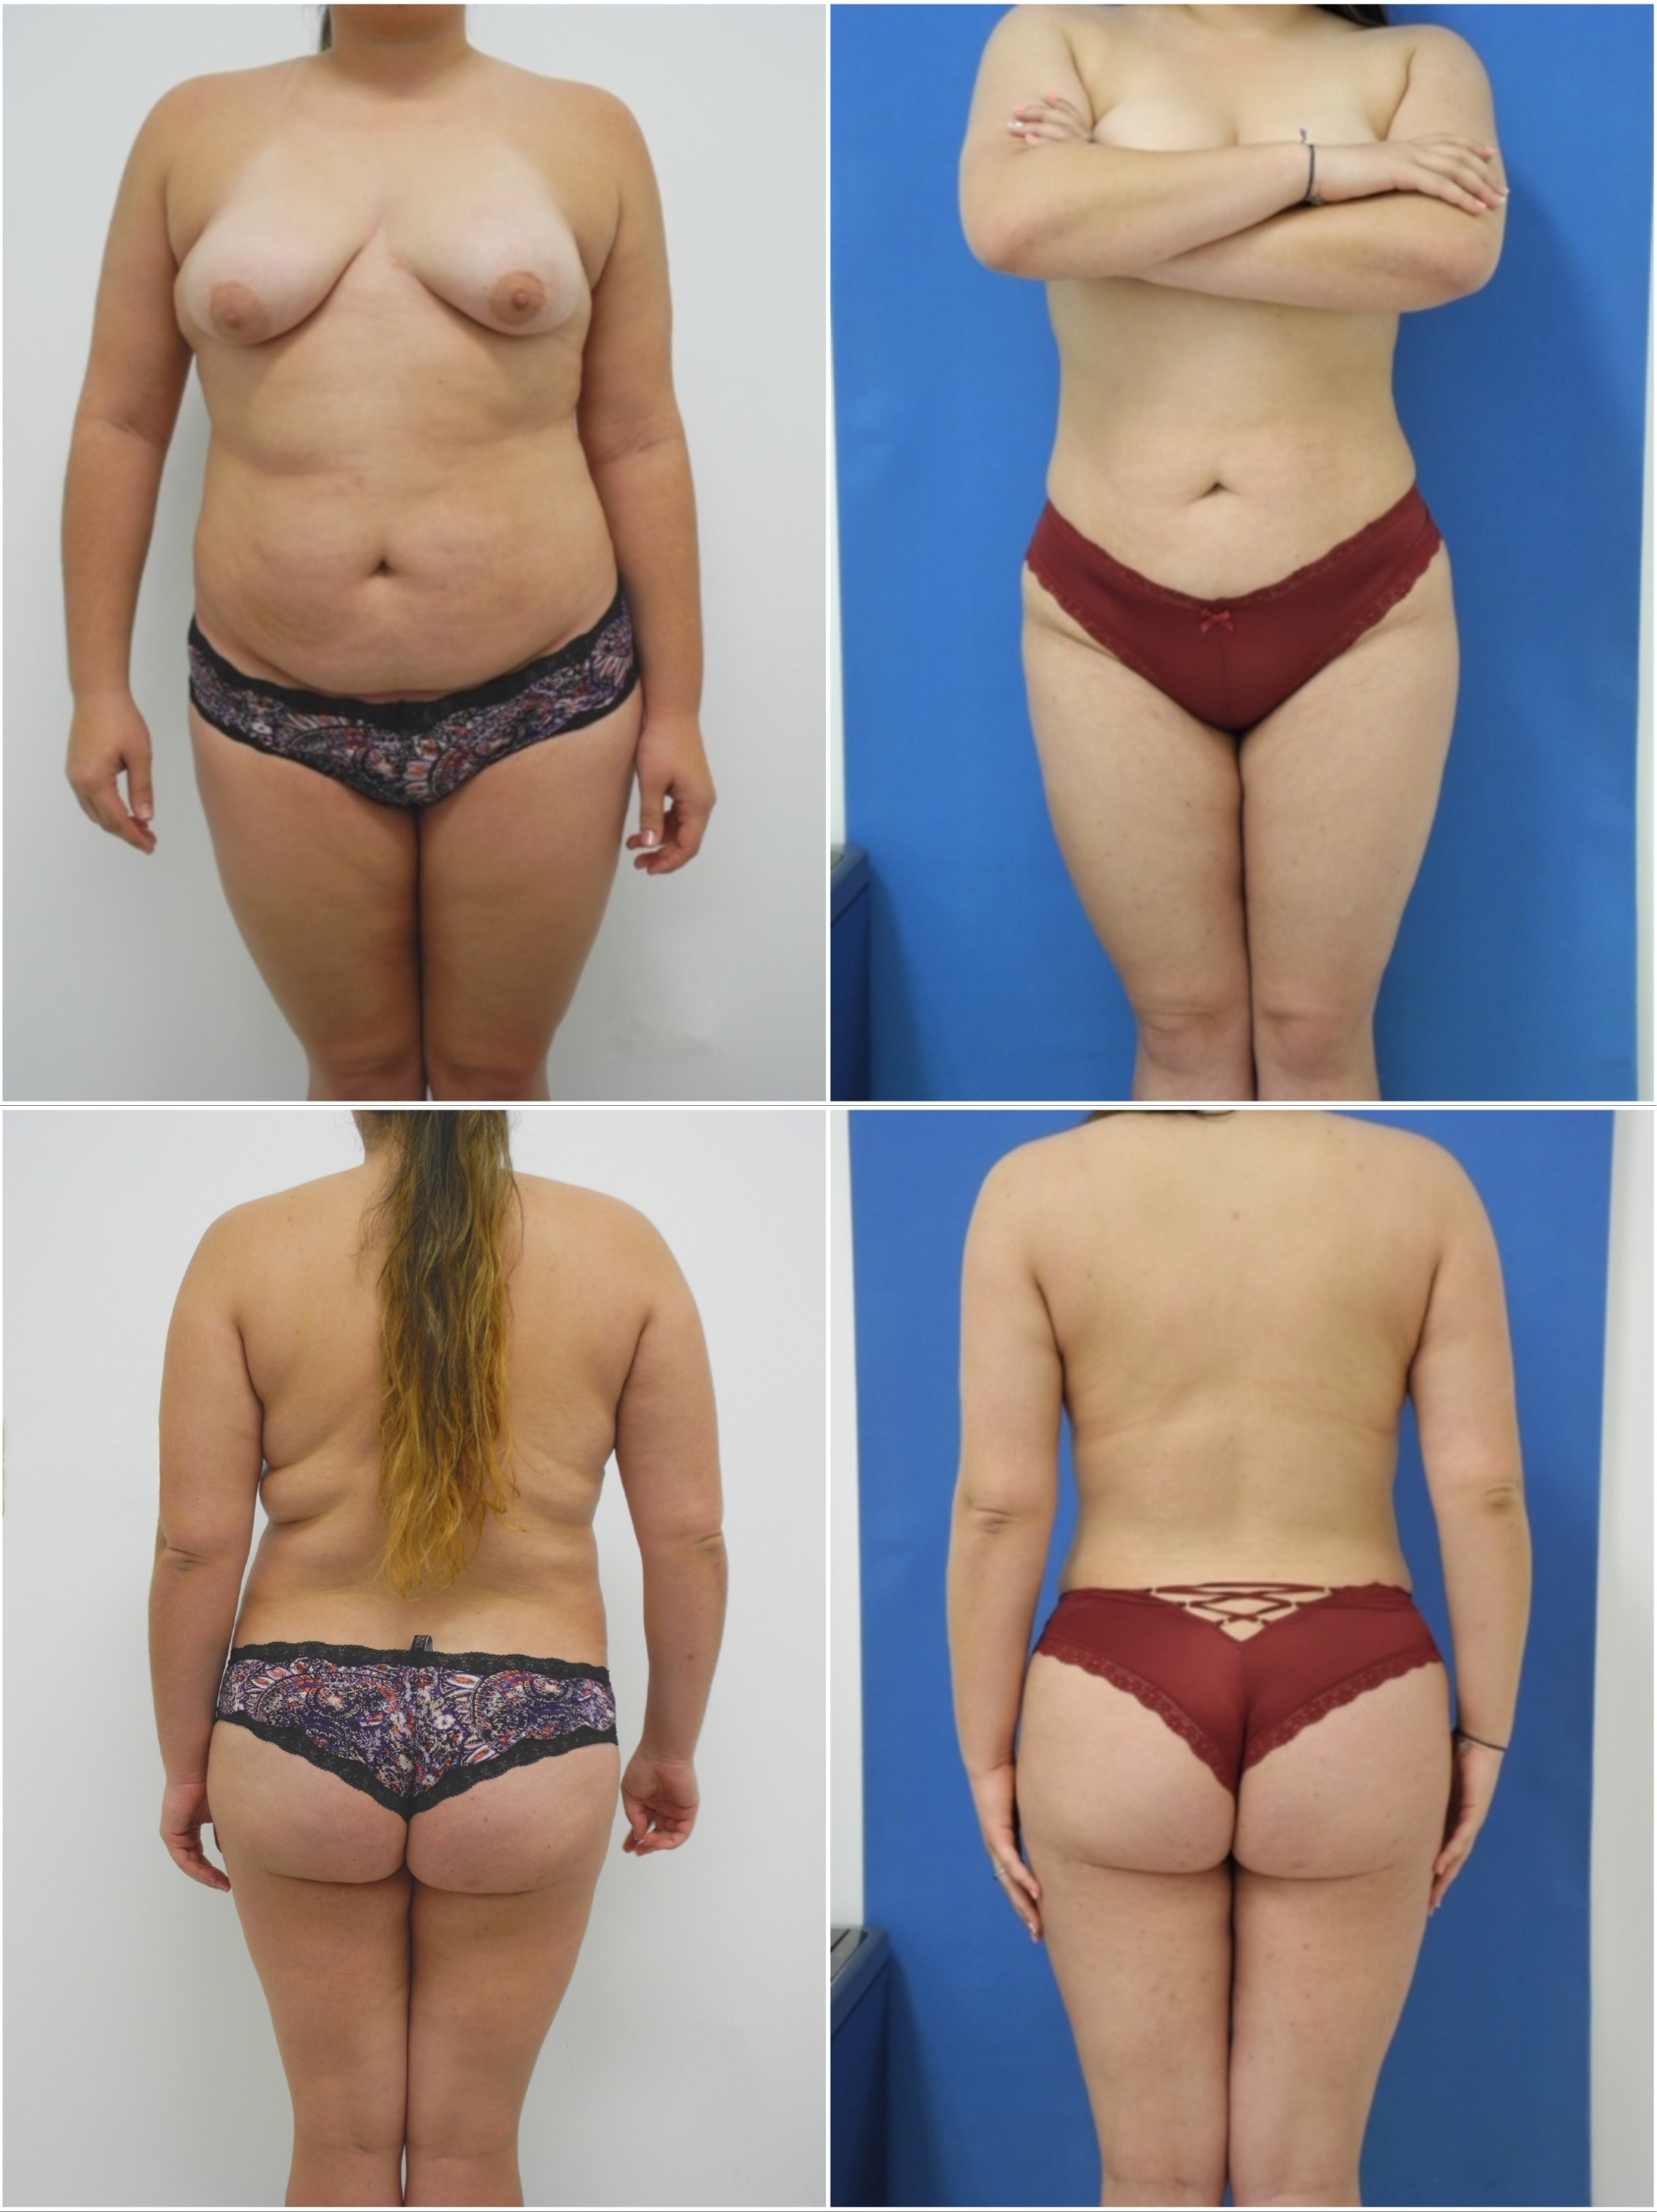 Liposuction Dr G Cosmetic Surgery